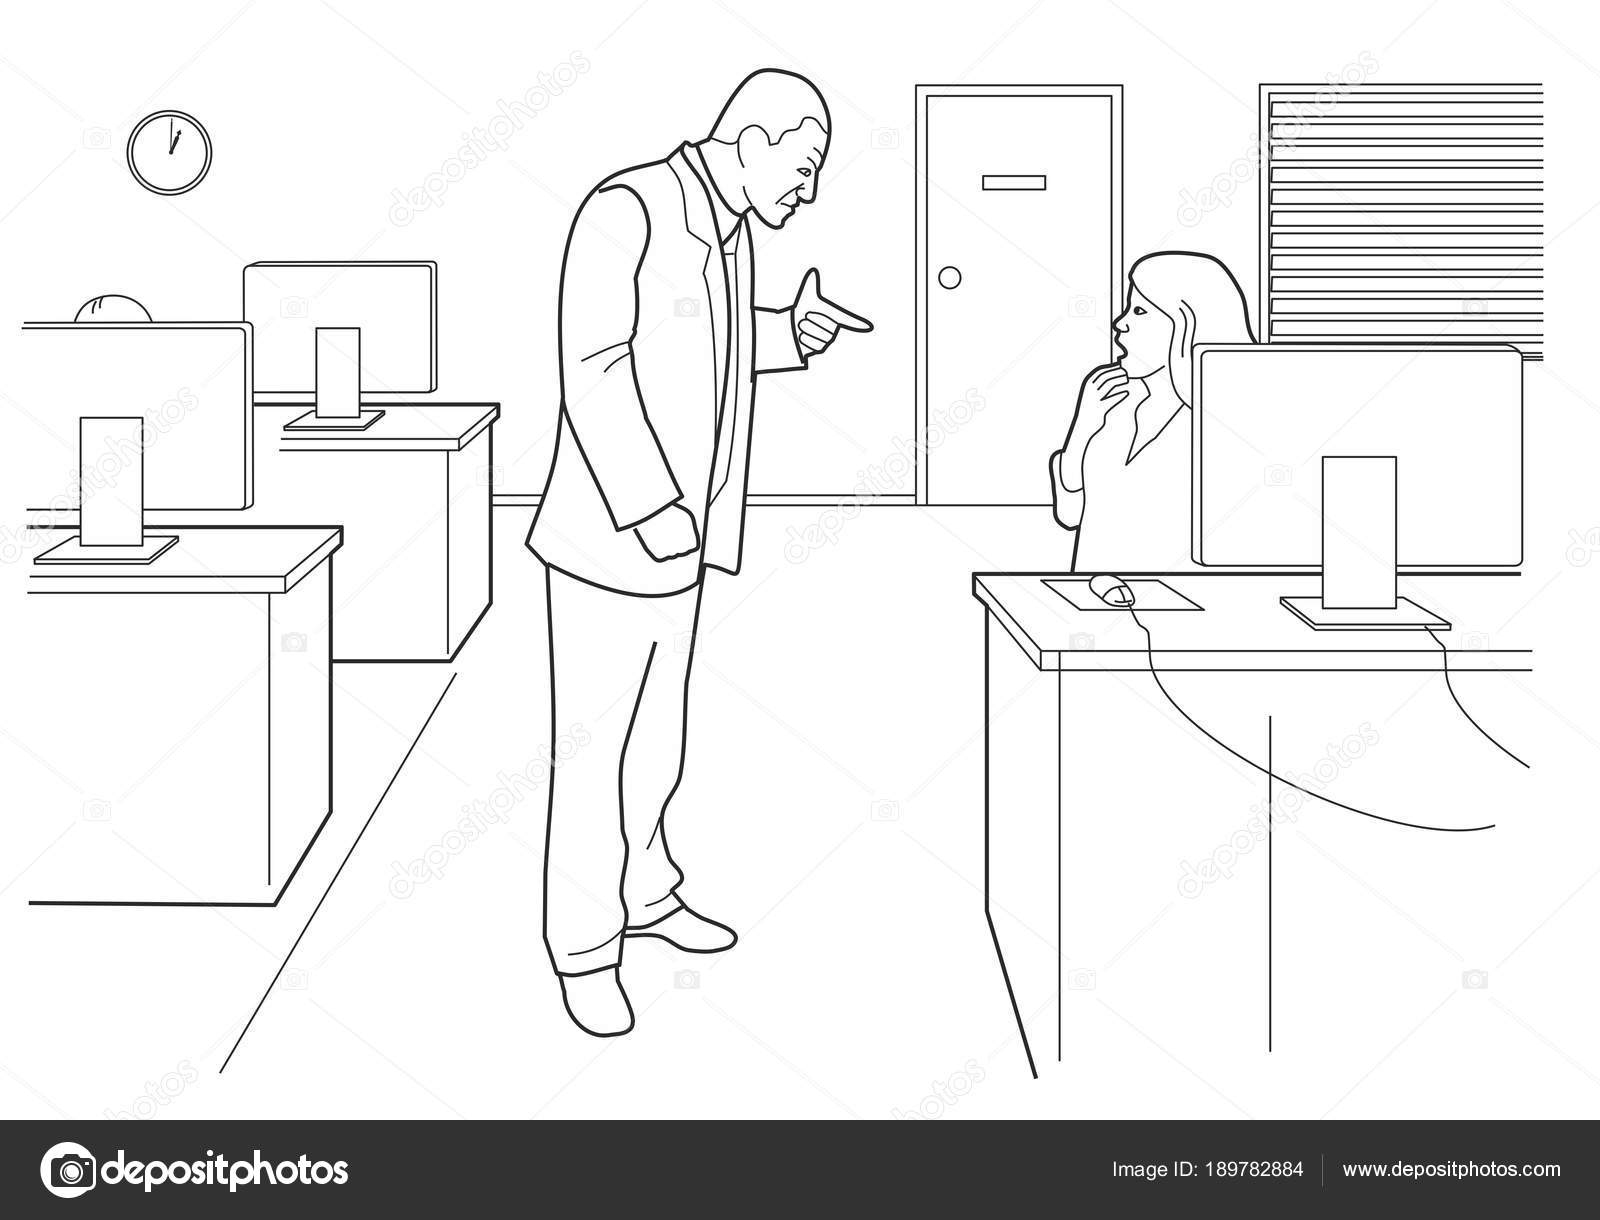 boss angry and woman afraid in open office black vector illustration isolated on white background vector by denispotysiev